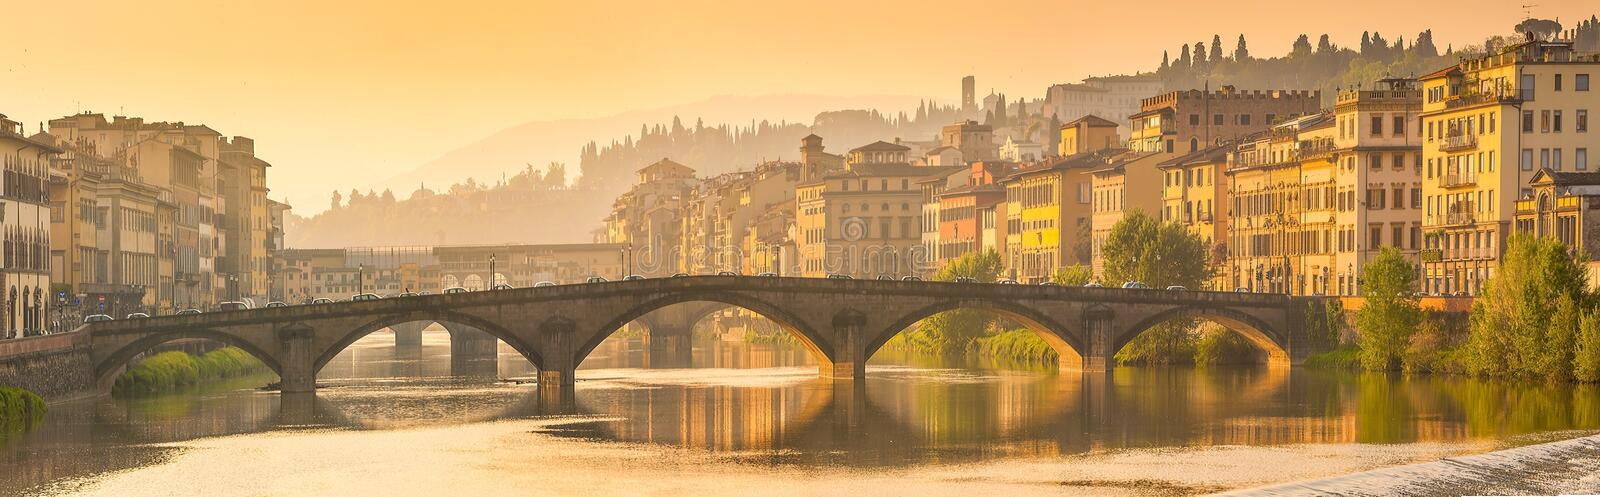 Florence France imagens de stock royalty free